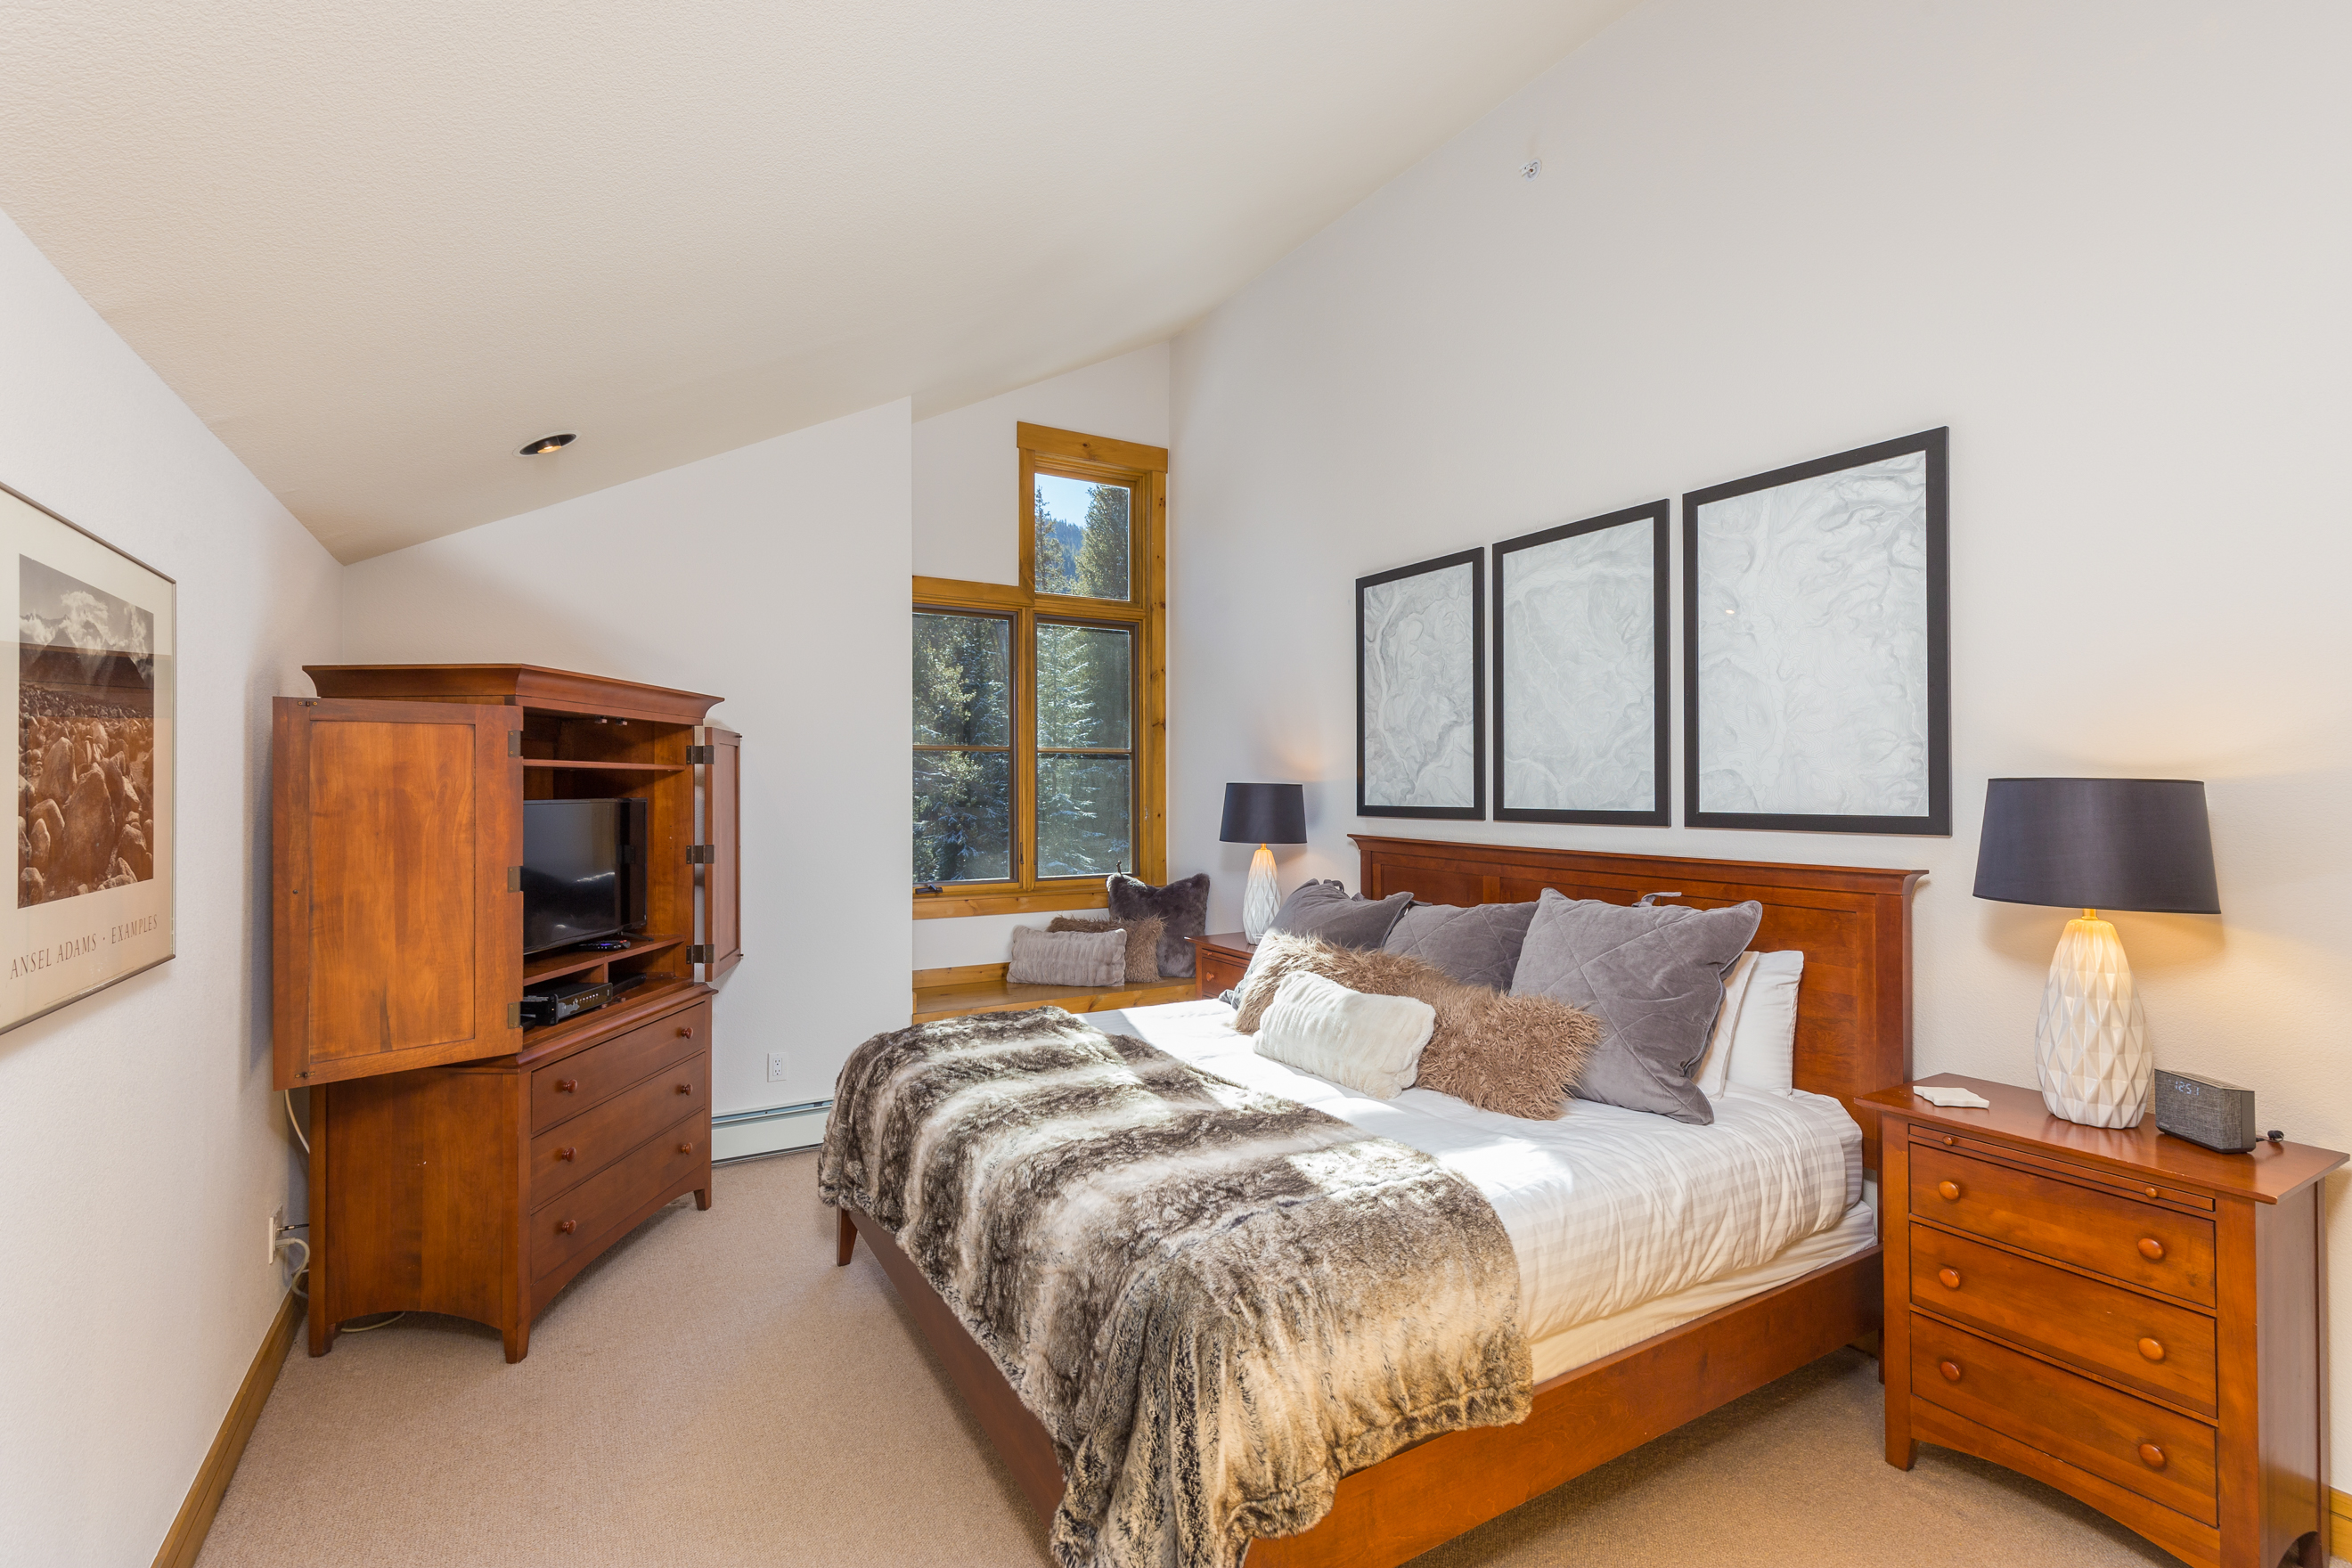 The master bedroom features a king-sized bed with Ivory White Bedding, a flat screen TV and a cozy window seat.